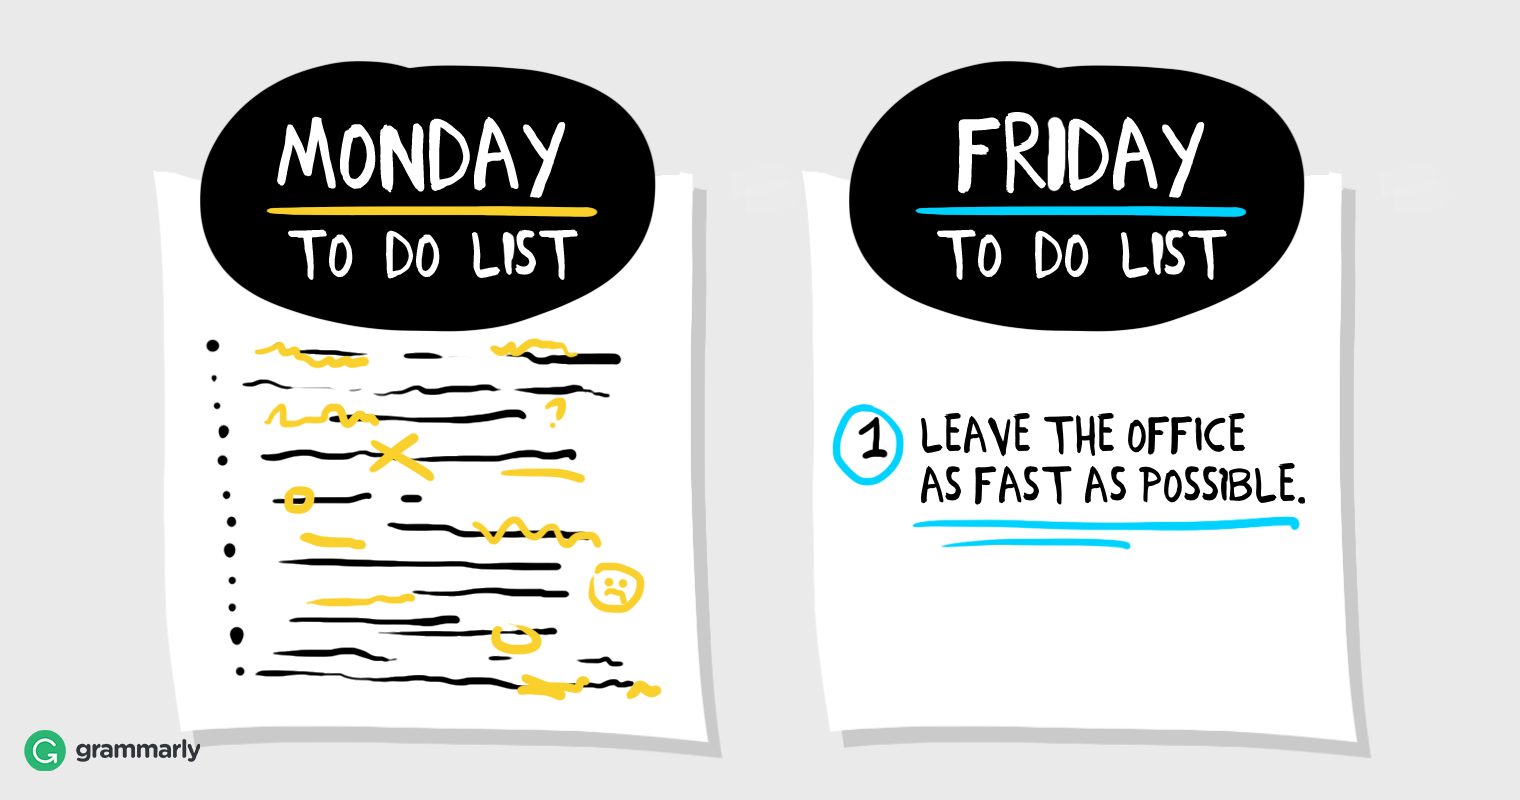 Make Friday Your Most Productive Day image